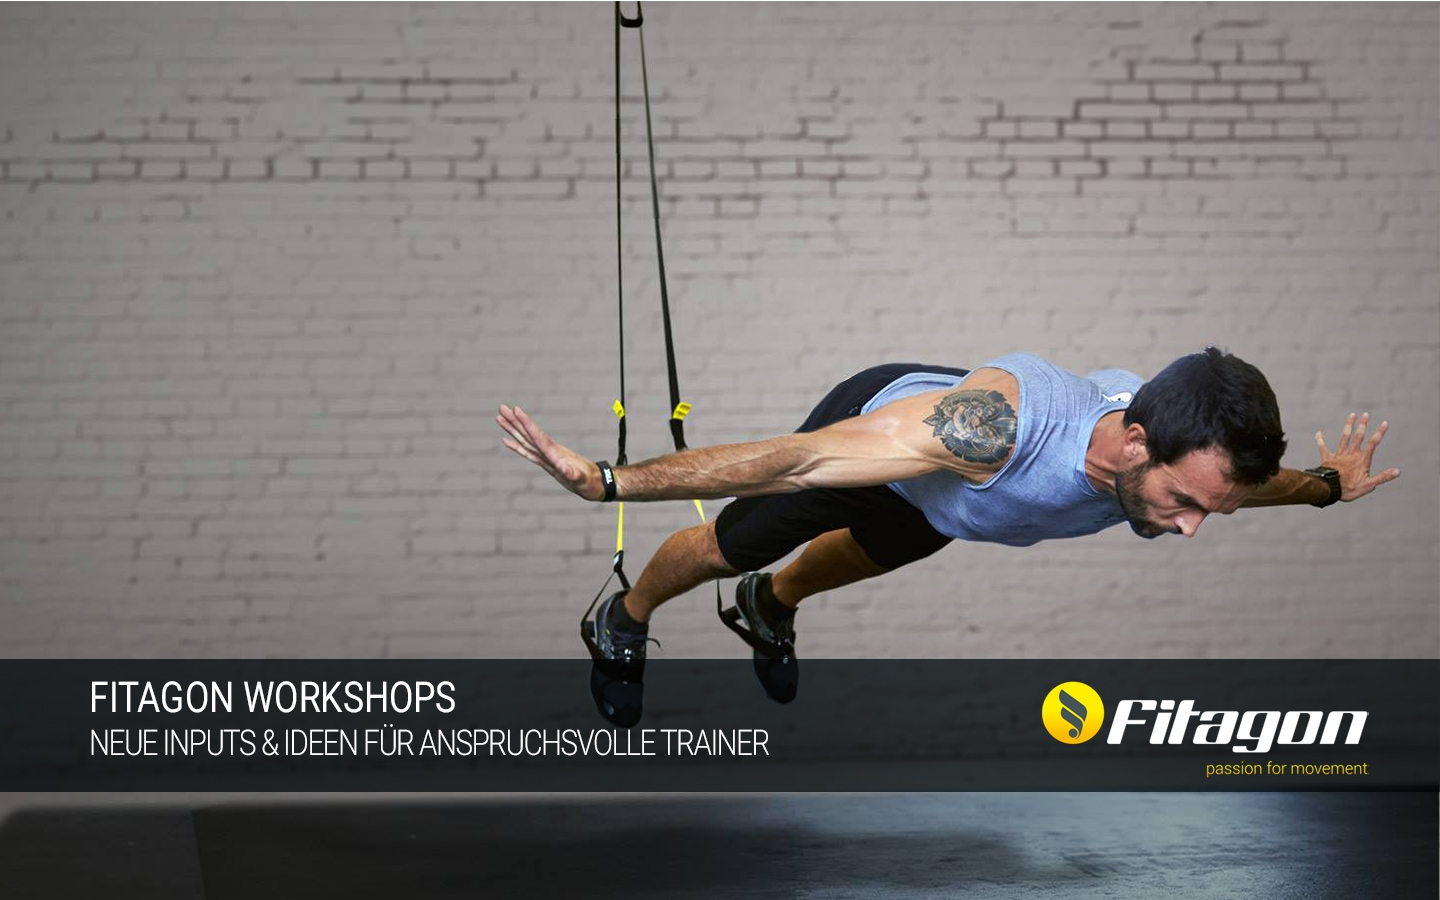 Fitagon Workshops